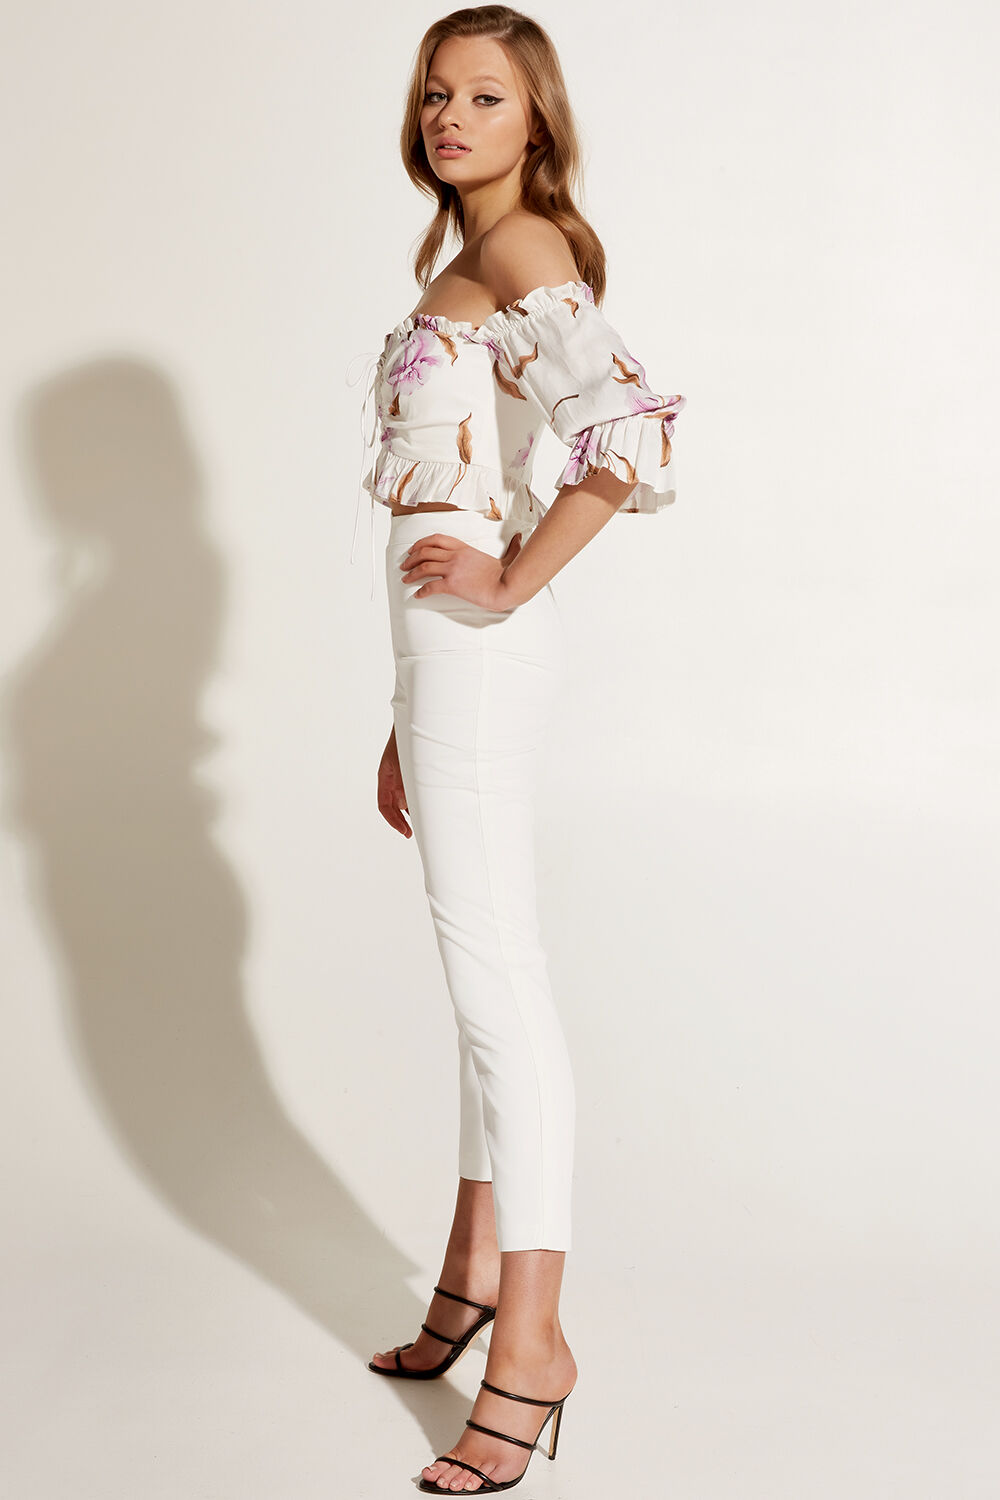 ORELLA TOP in colour BLANC DE BLANC